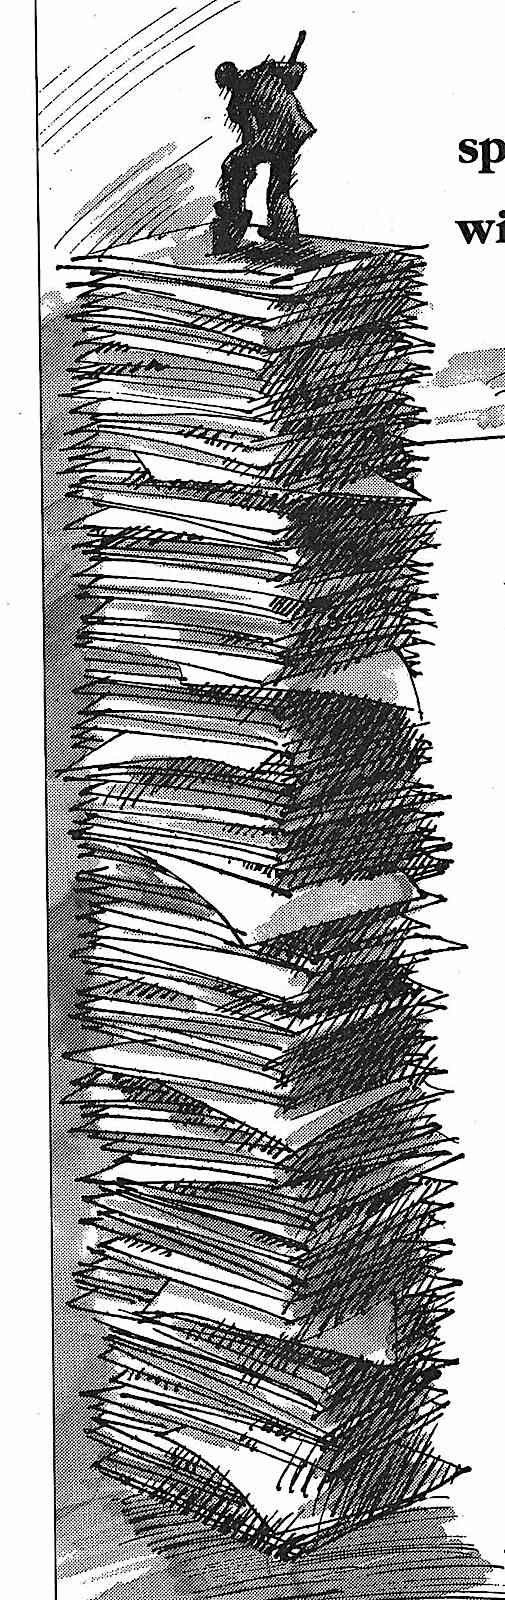 a 1986 illustration about office workload, a giant stack of paper